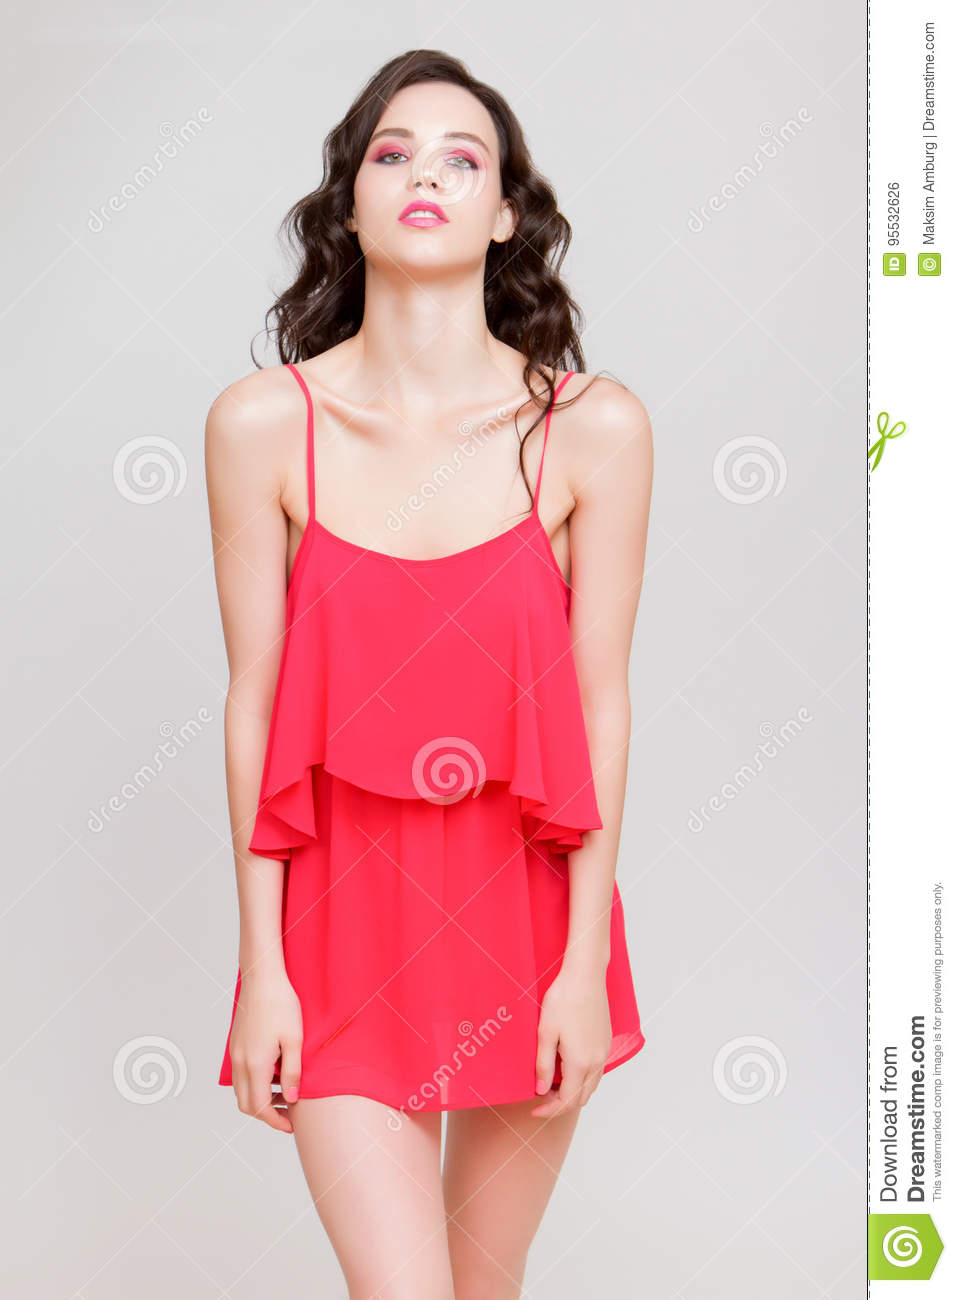 Amused beautiful young woman in pink mini dress posing on hip and looking